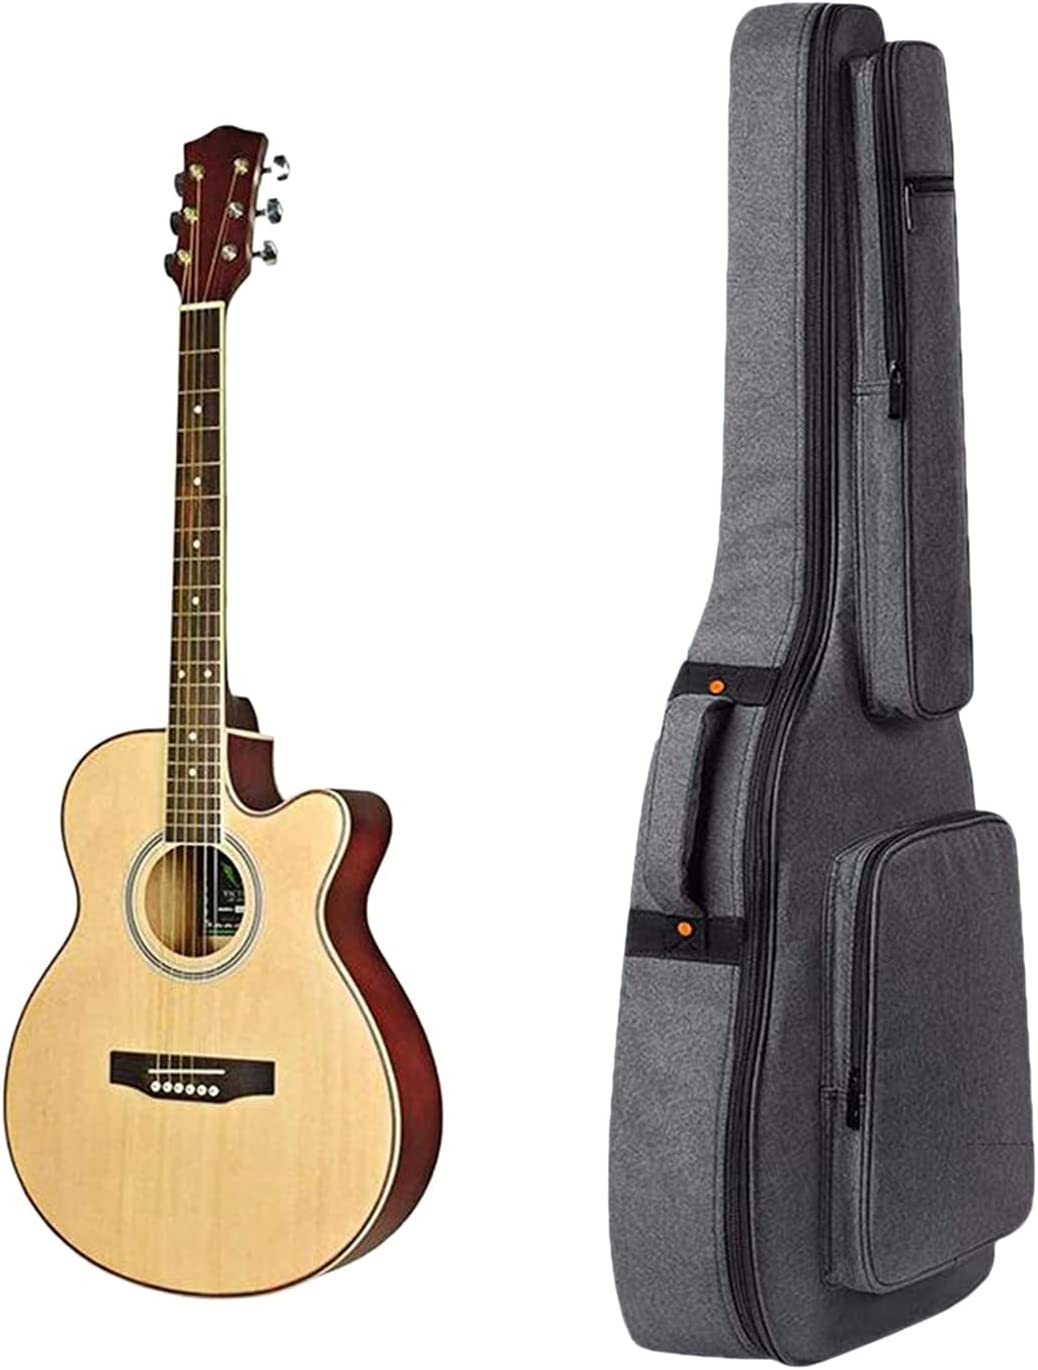 Our 2021 autumn and winter new shop OFFers the best service Yi-Achieve 41 inch Electric Guitar Bag Waterproof Soft Dustproof